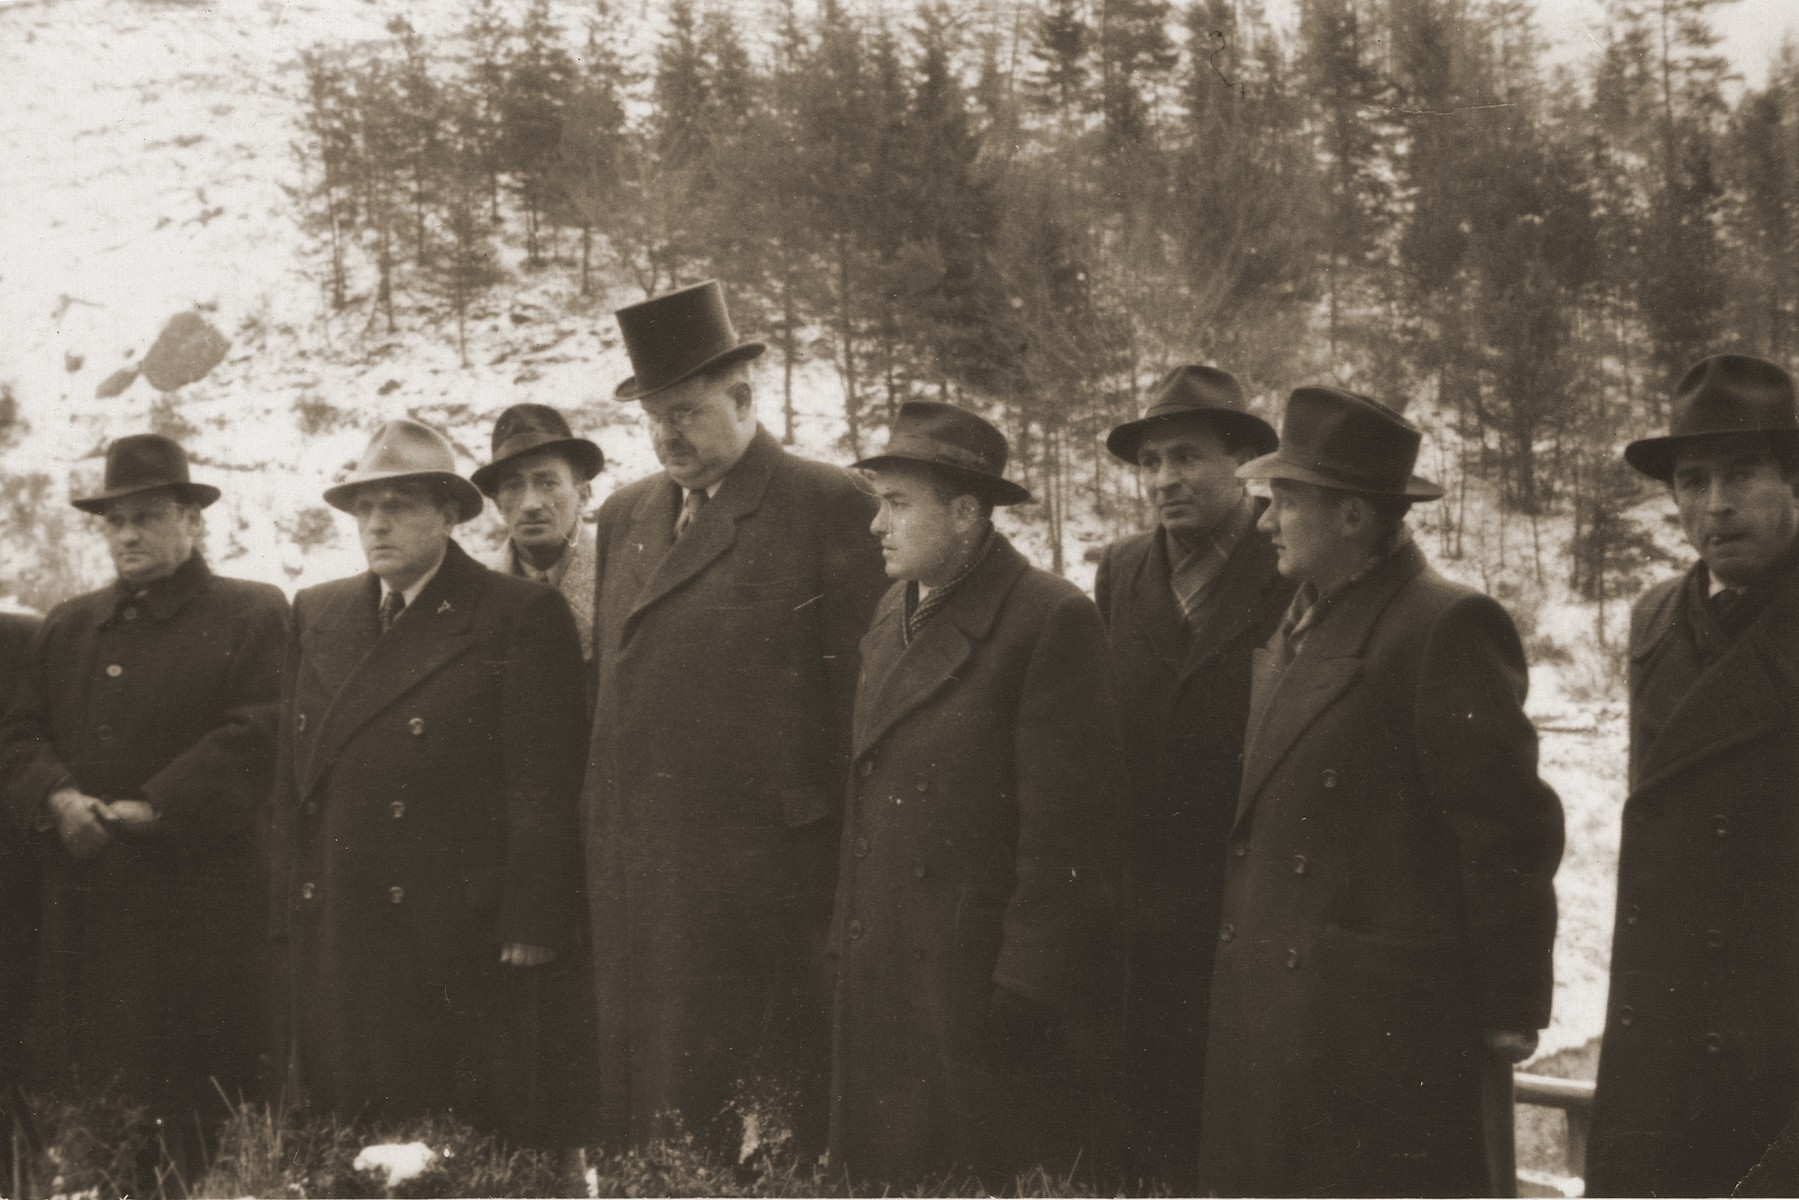 Survivors attend a memorial service for Jewish victims at the Flossenbuerg concentration camp.   From left to right are Israel Igster, Weingarten, ?, Philipp Auerbach, Palucki, Motek Fishel, and Krzepicki.